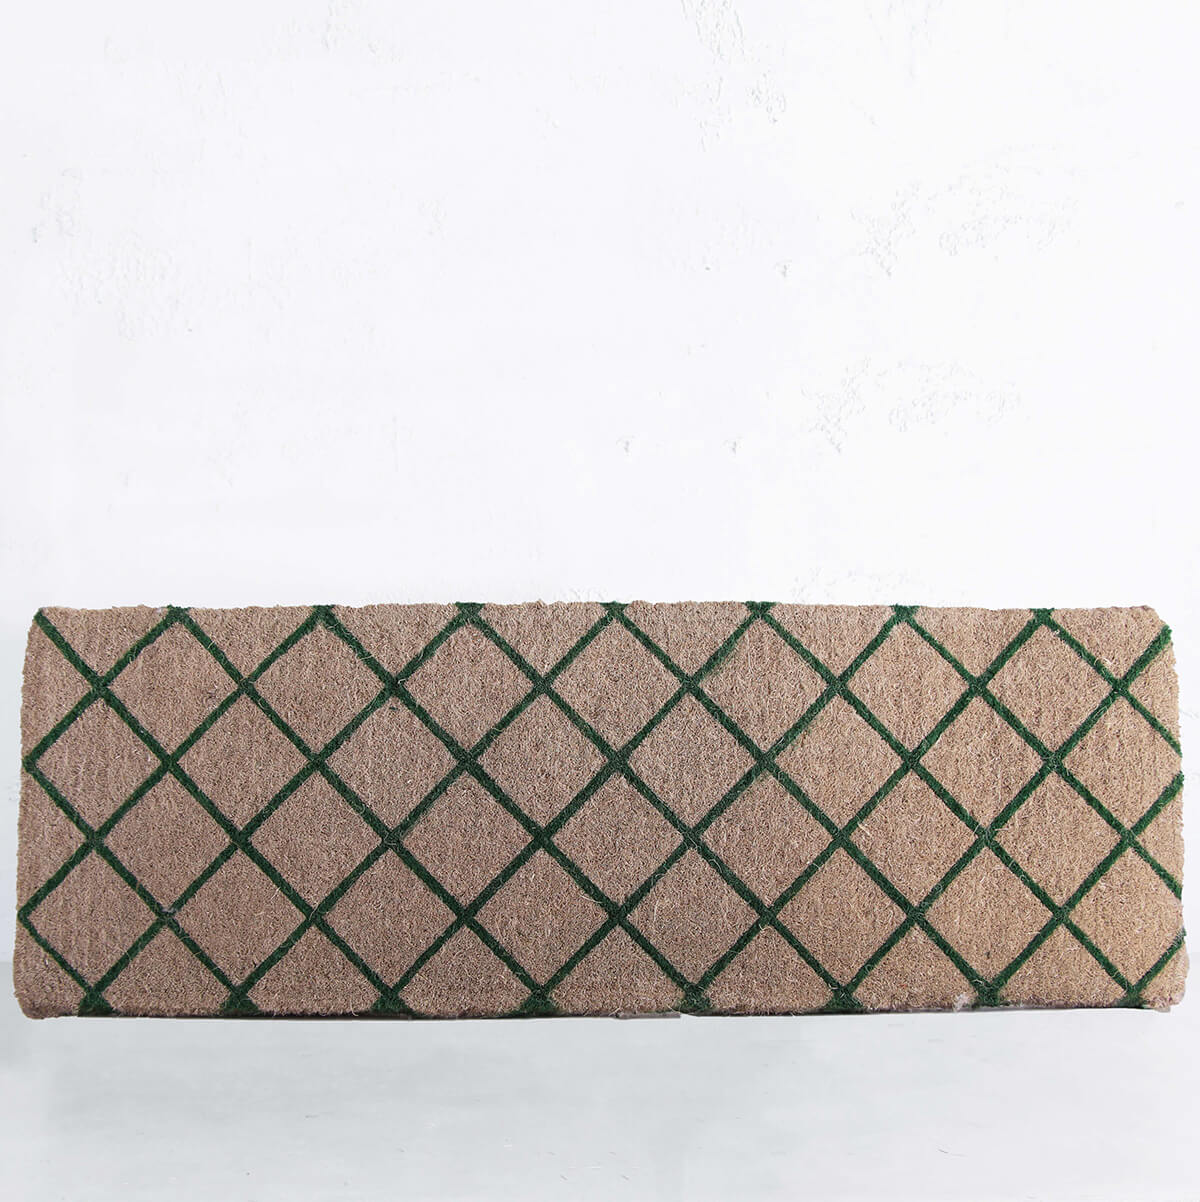 FRENCH GREEN TRELLIS DOOR MAT